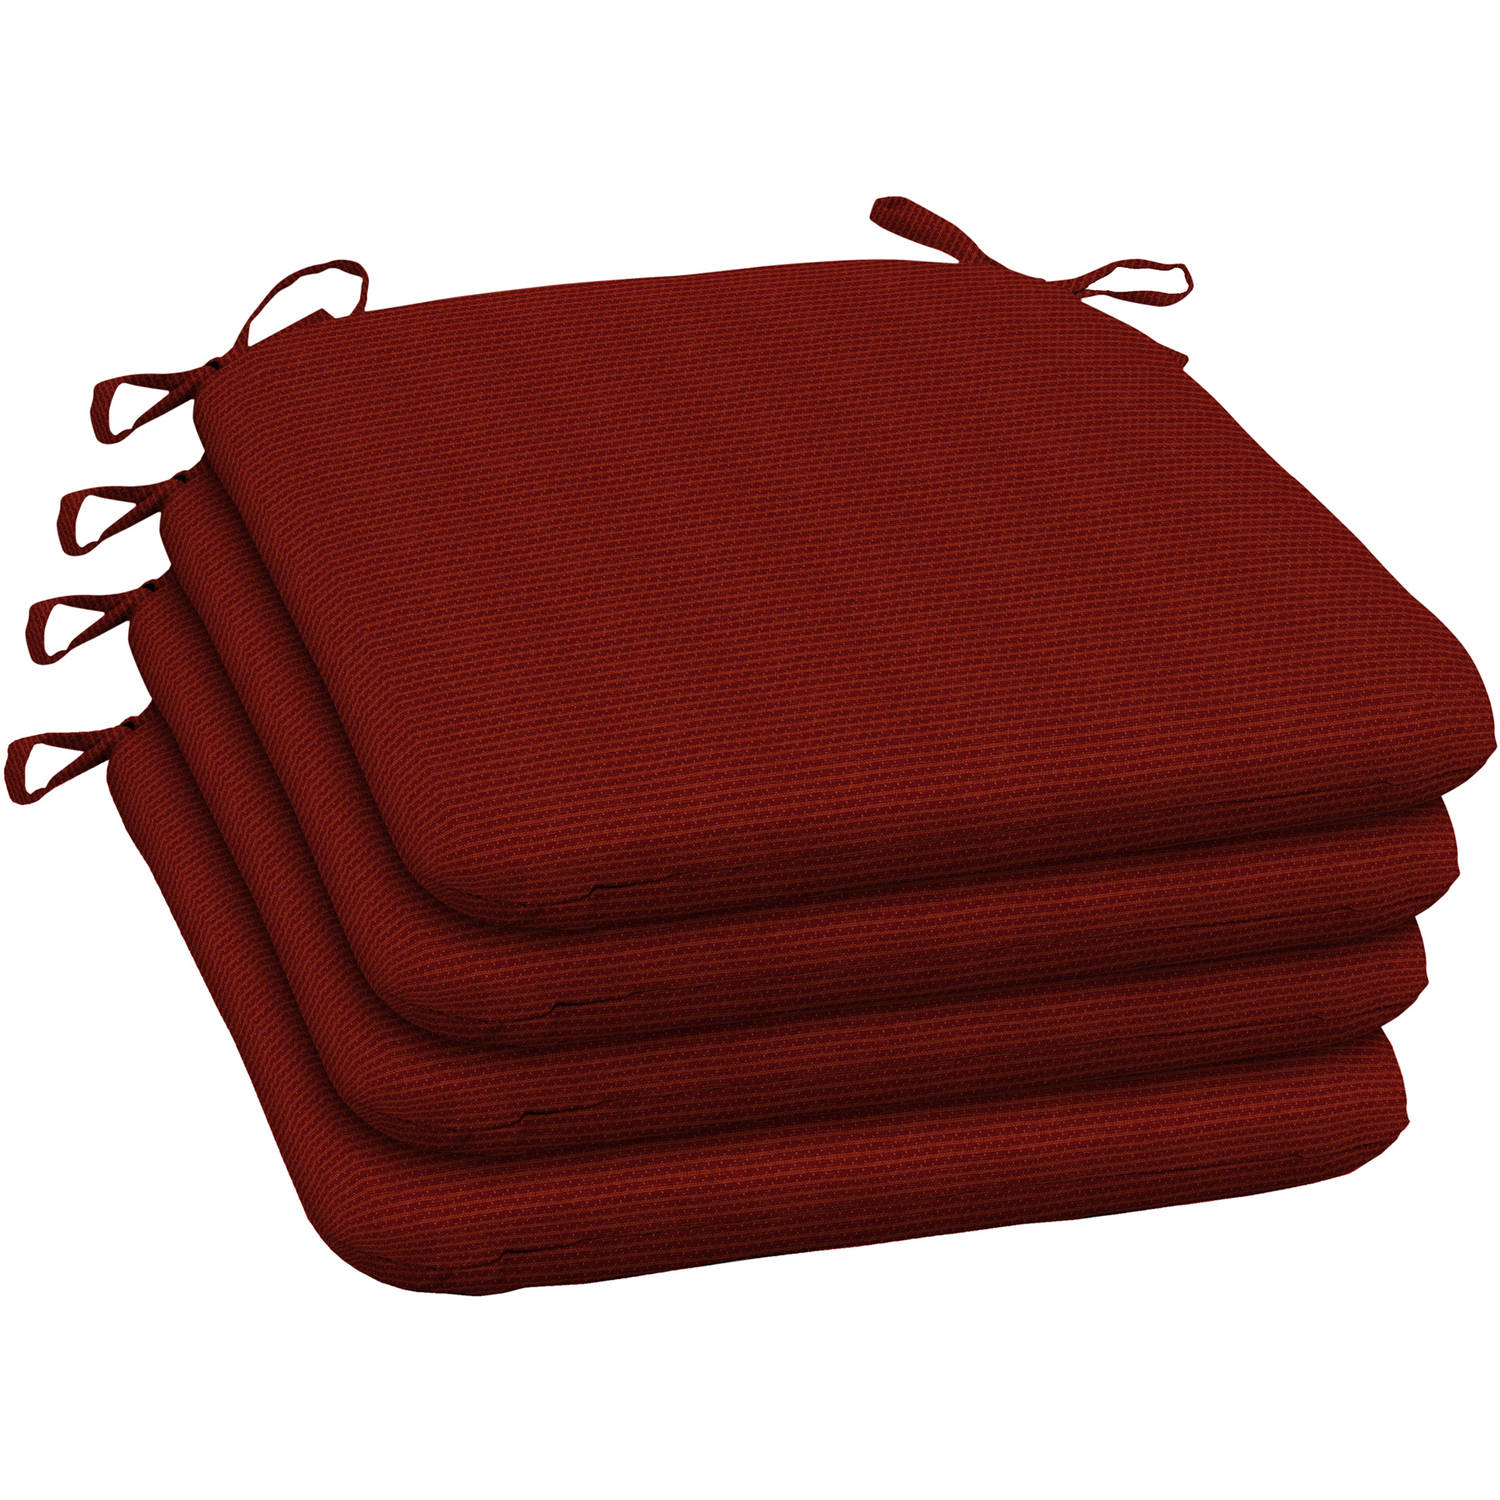 Arden Outdoors Red Rib Woven Wrought Iron Seat Pad, Set of 4